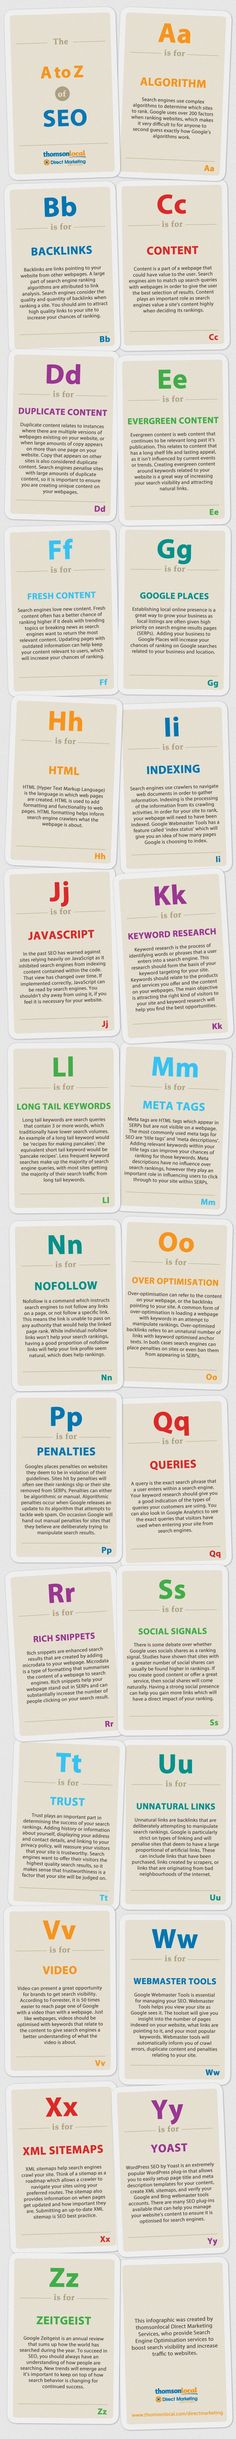 Infographic: The A to Z of SEO #searchengineoptimizationspecialist,